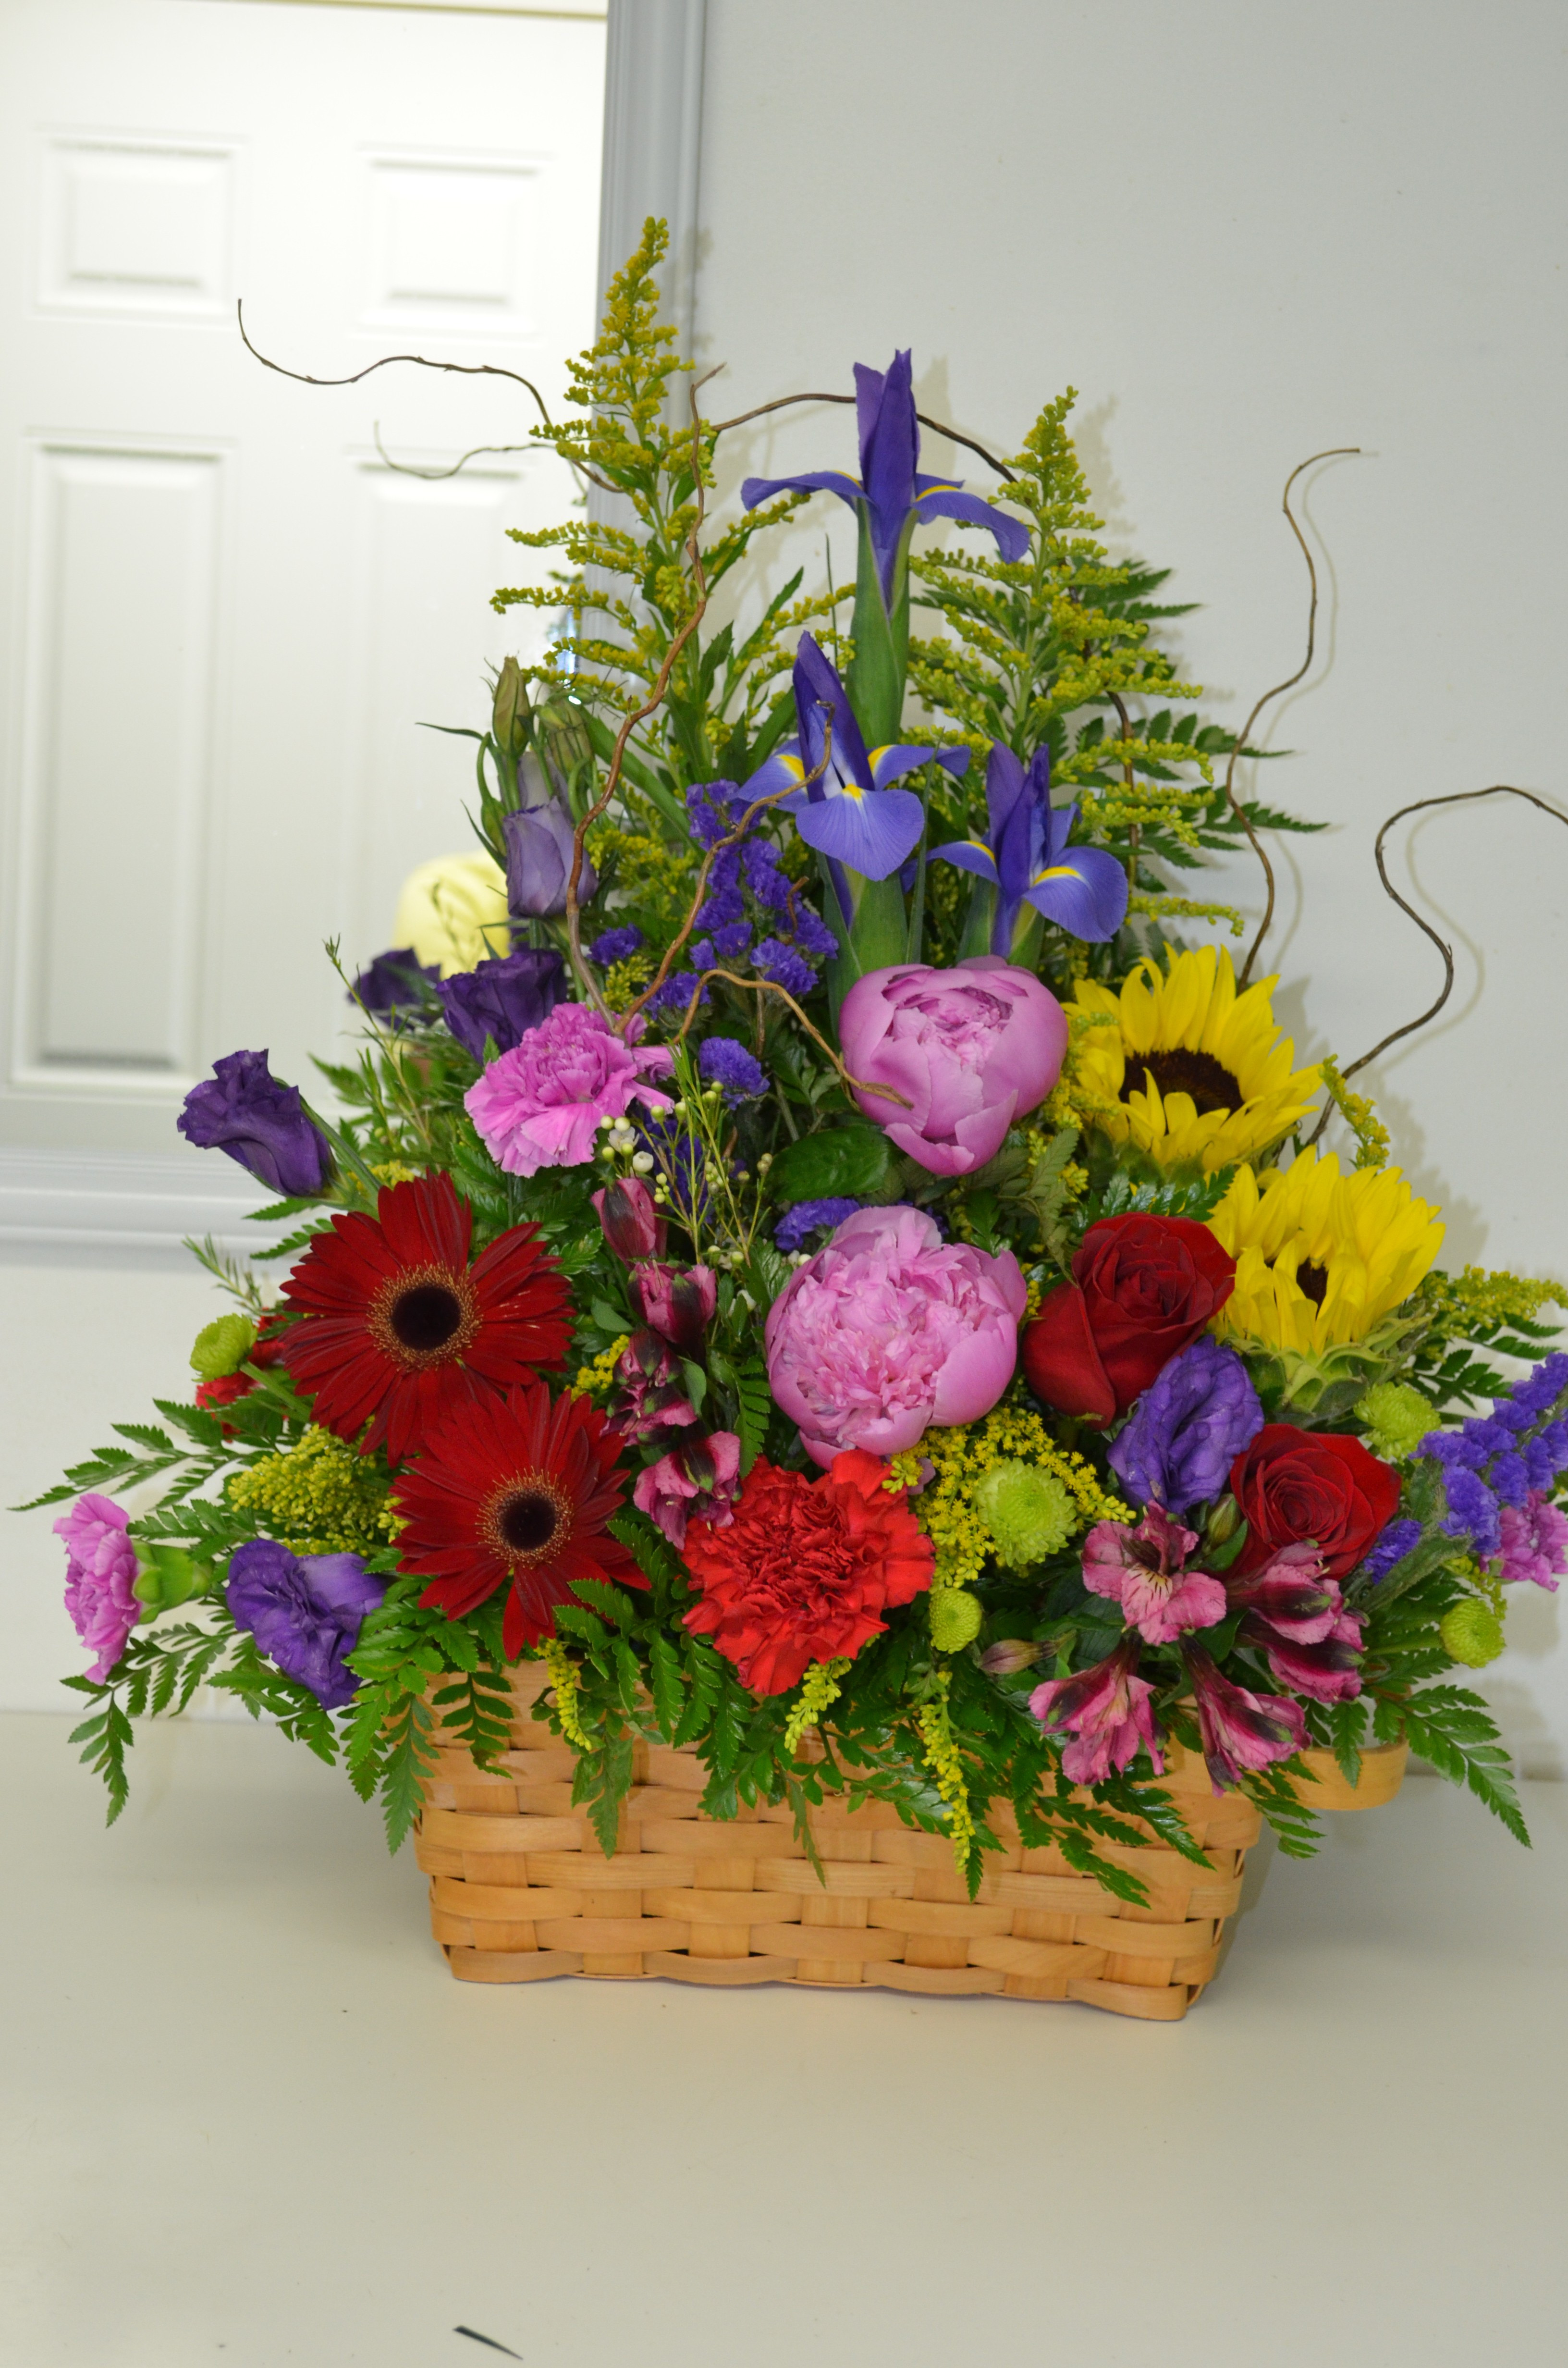 Next Day Delivery ADD TO FAVORITES Peony basket